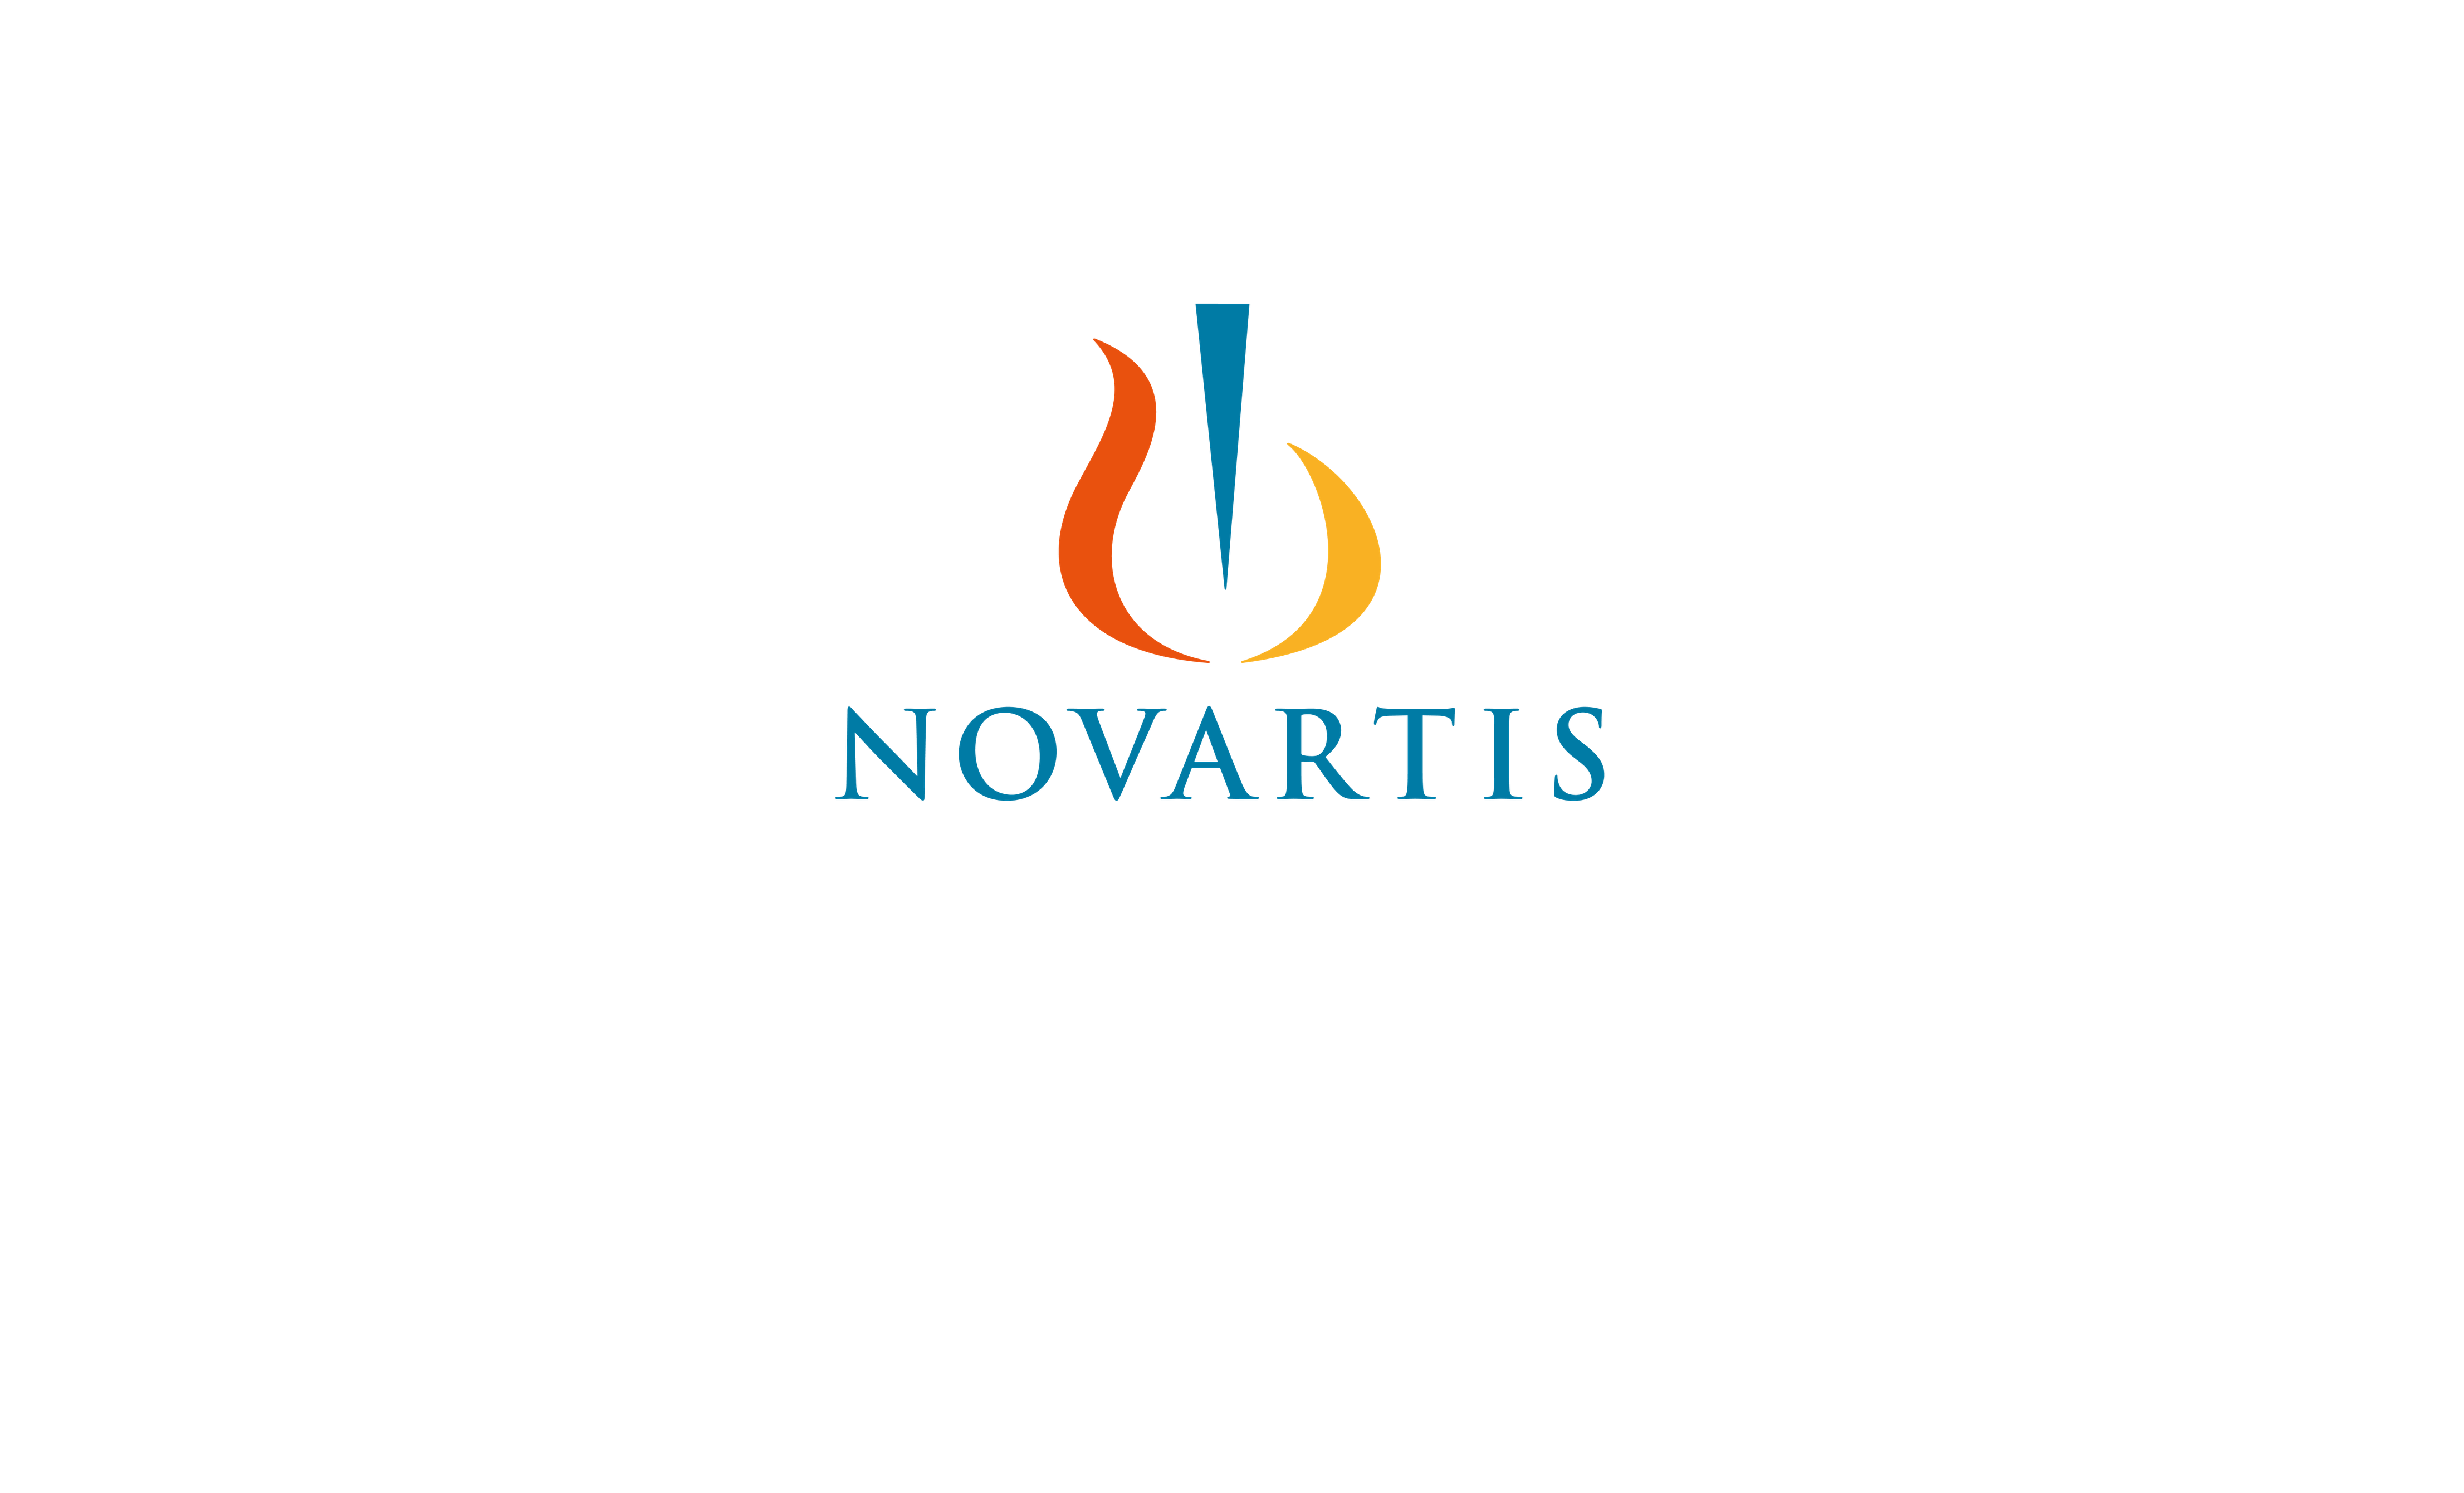 Novartis Logo - Novartis Profit Slips as Key Drug Goes Generic